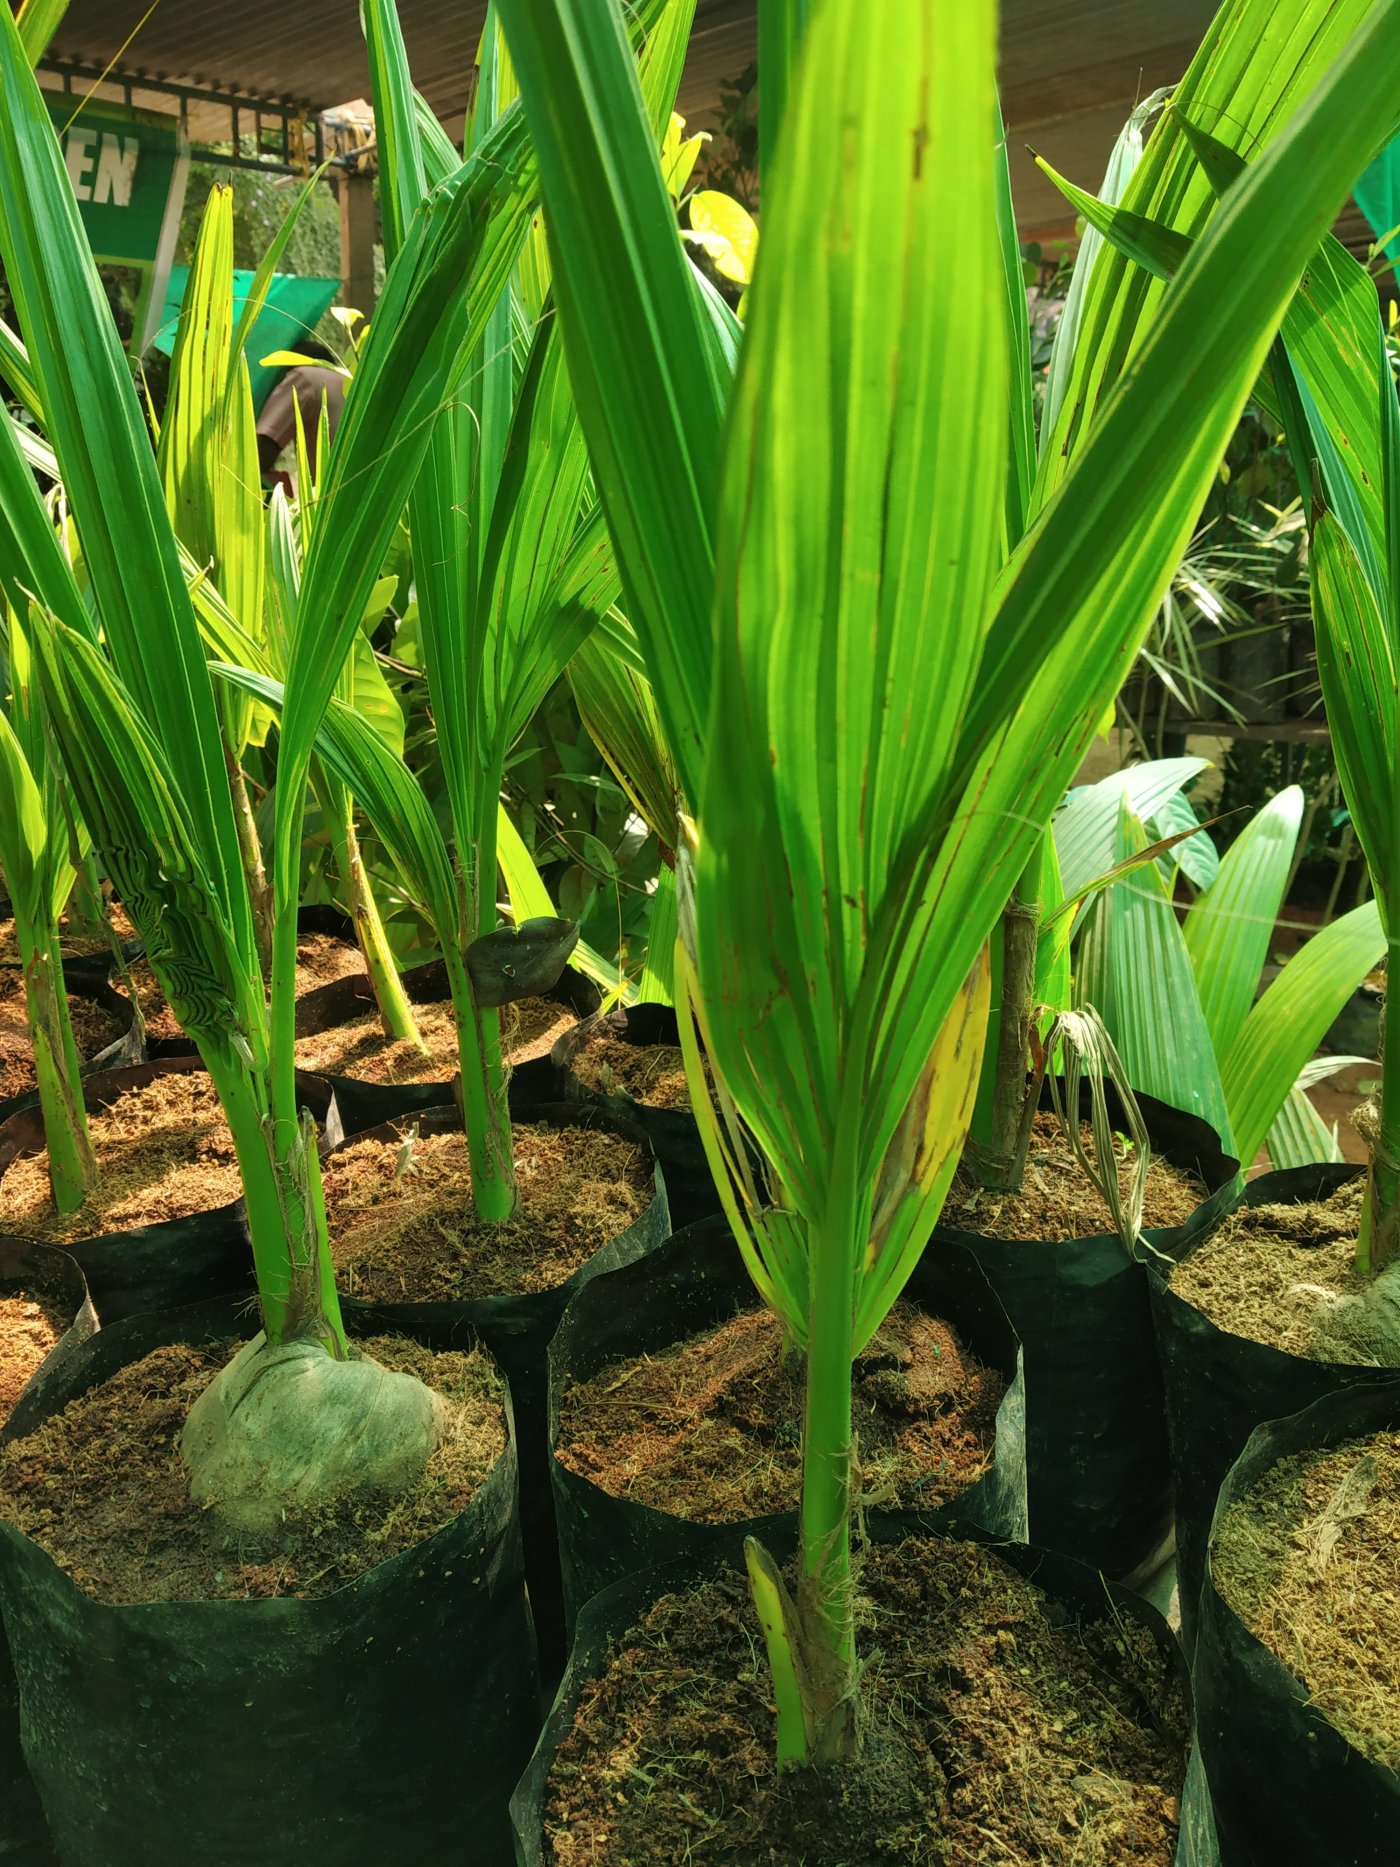 Coconut seedlings in bags ready to replant .